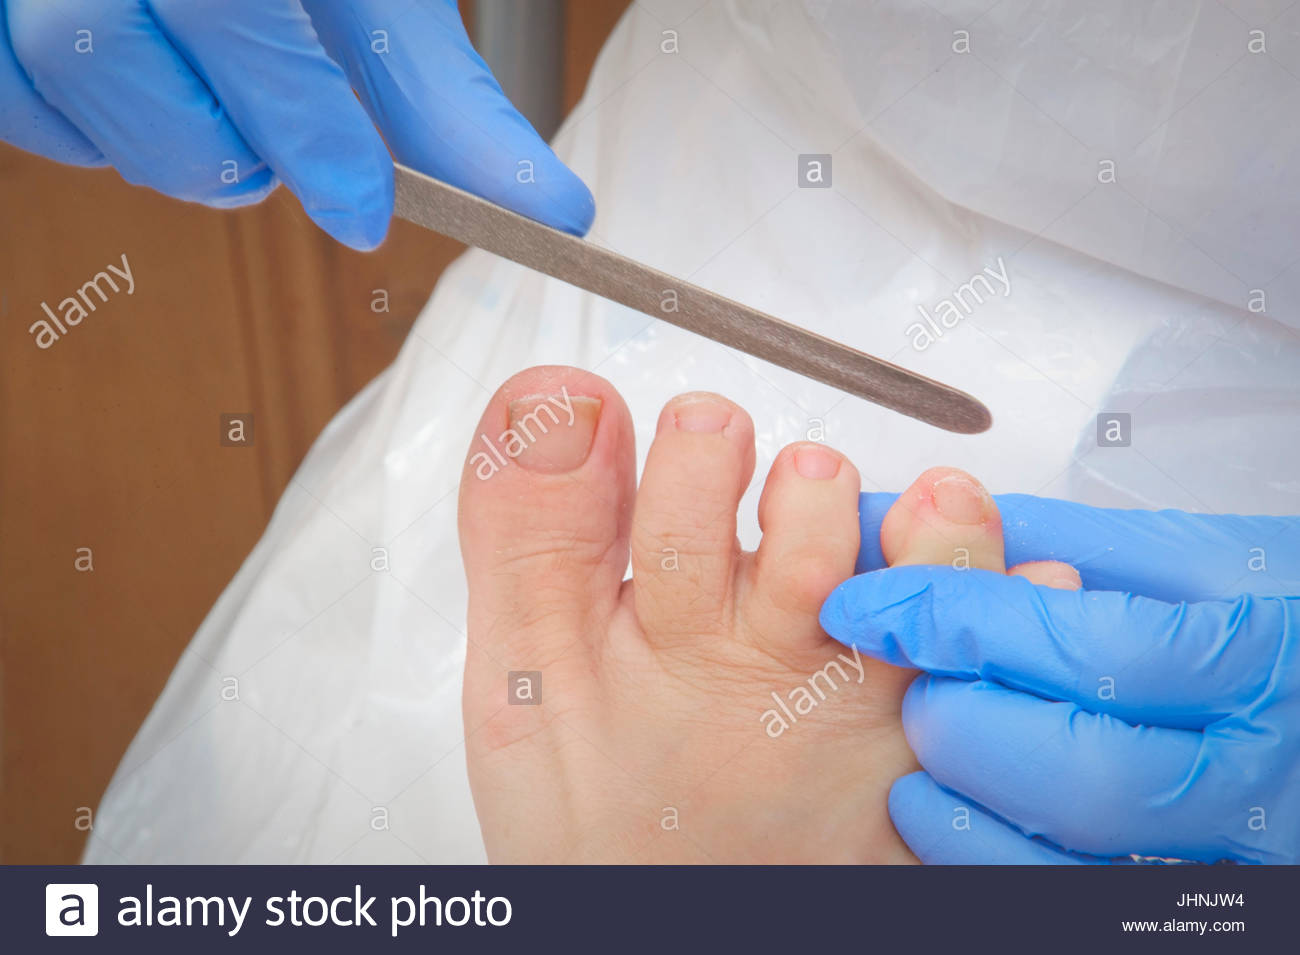 Chiropodist/podiatrist uses an emery board to file the toenails on a ...